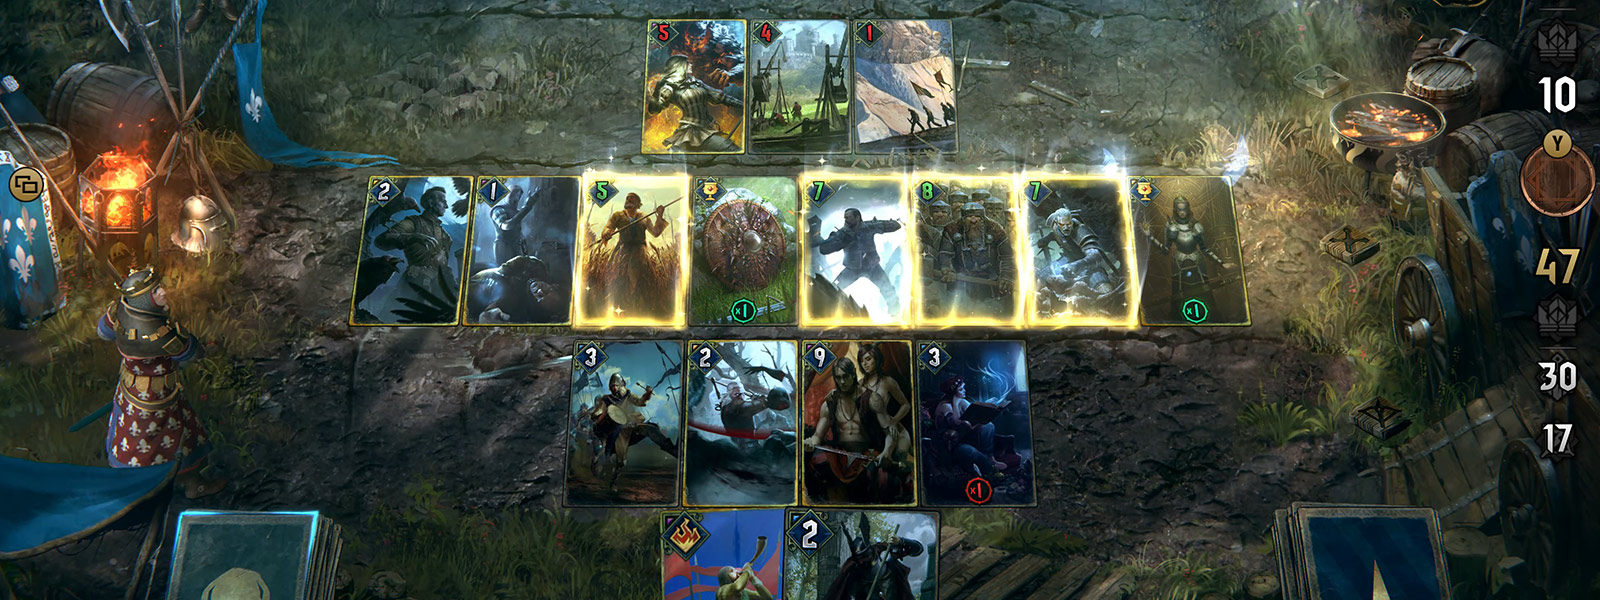 Multiple cards are highlighted during a battle screen